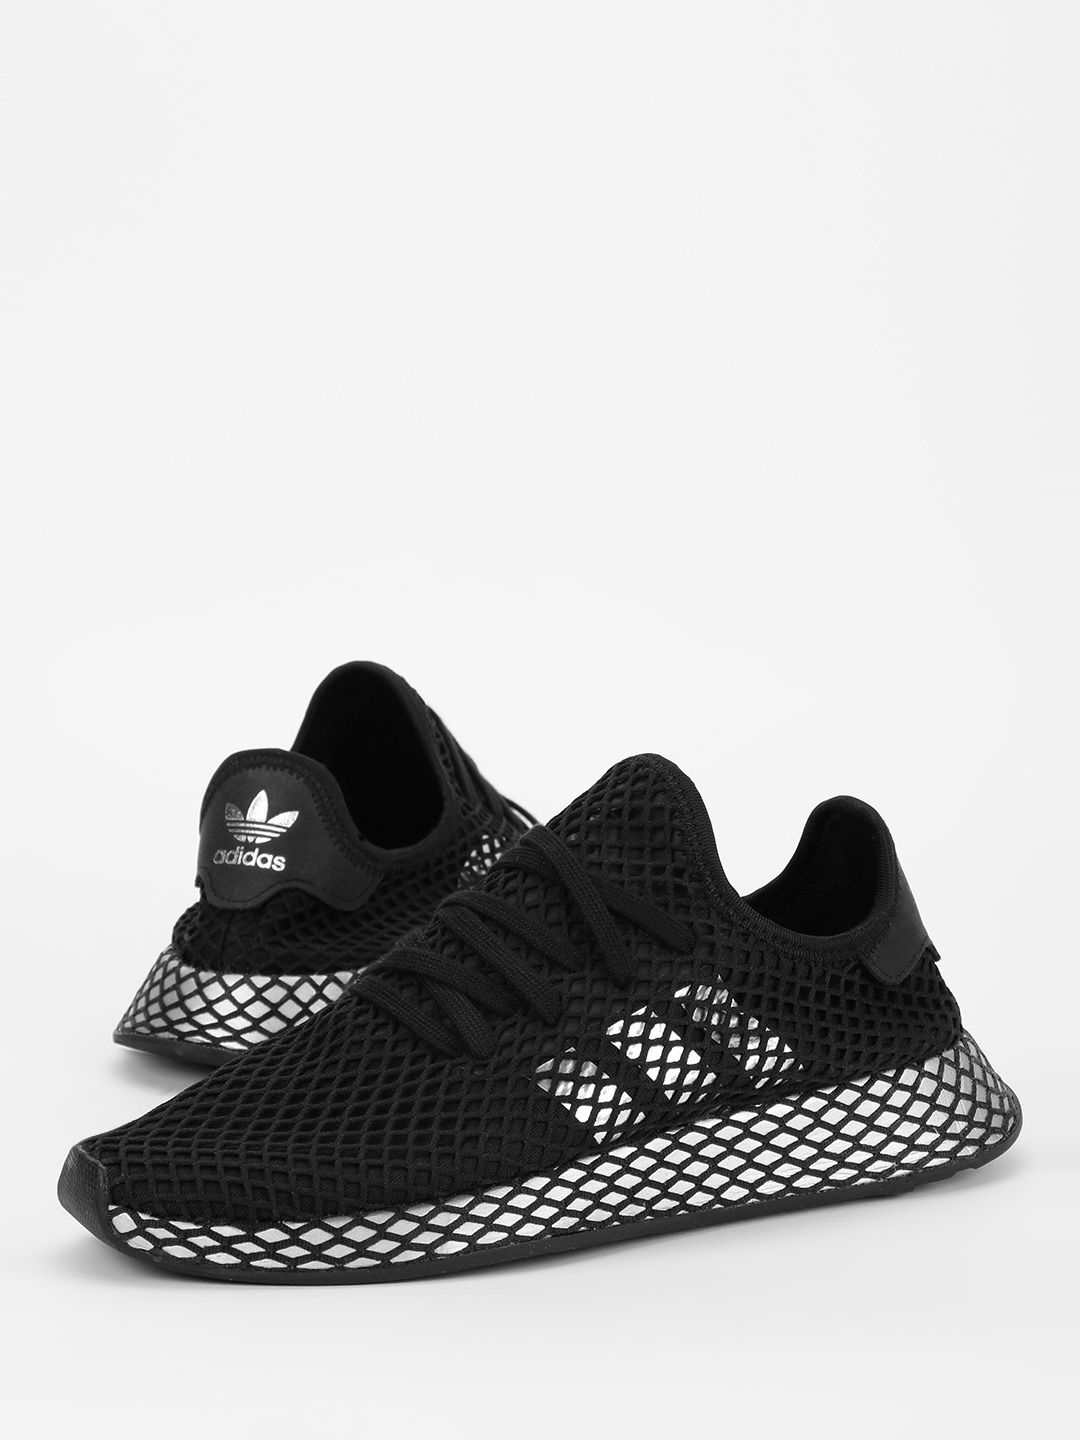 Adidas Originals Black Deerupt Runner Shoes 1